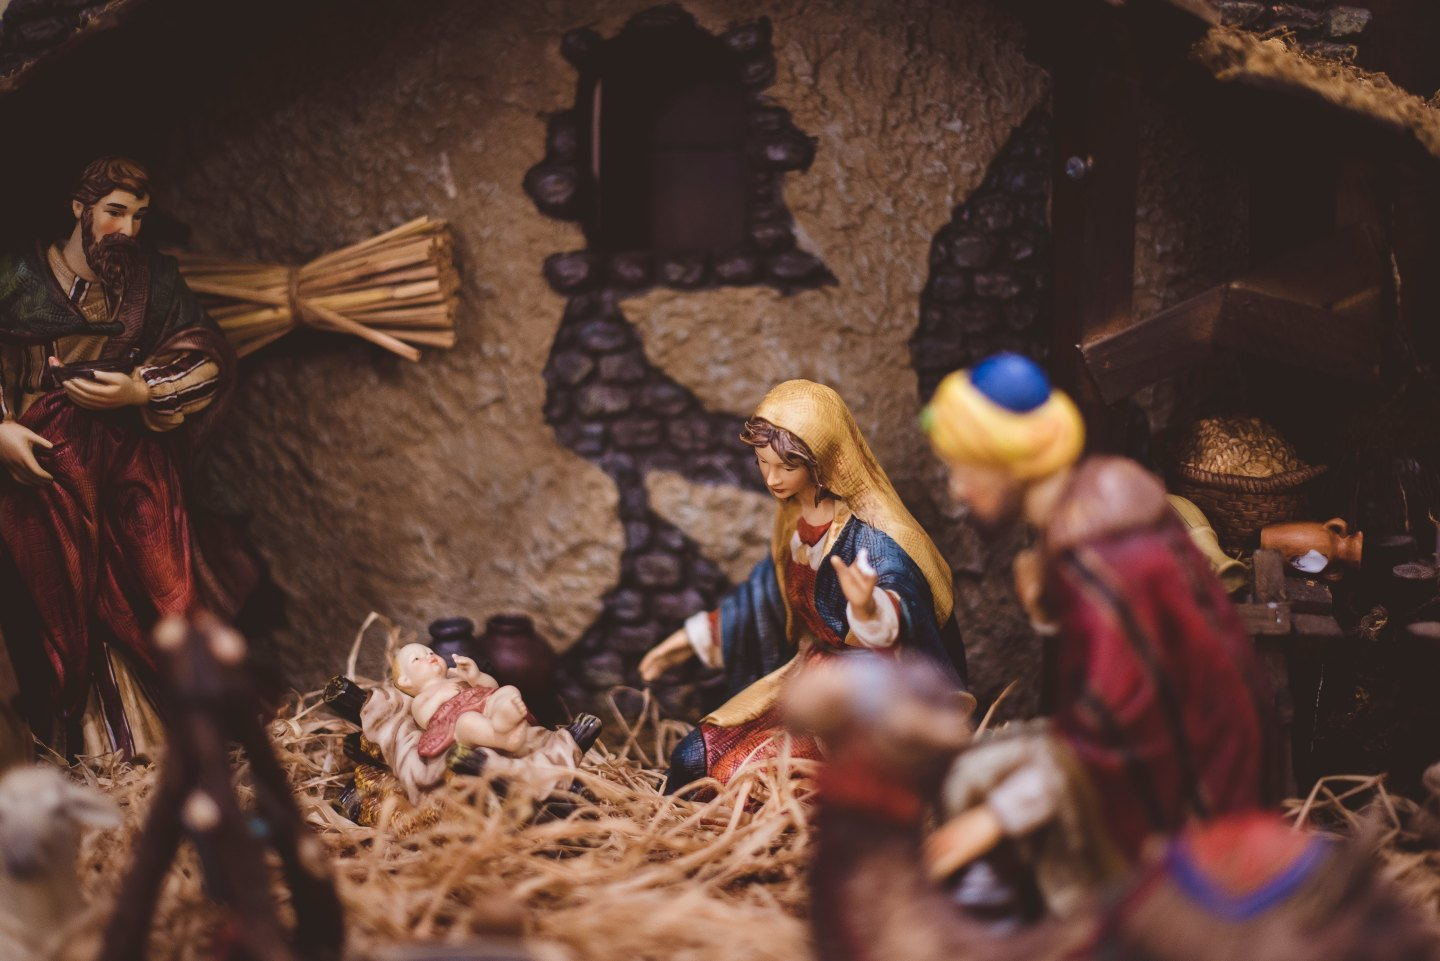 Christmas in Spain 4 - Nativity